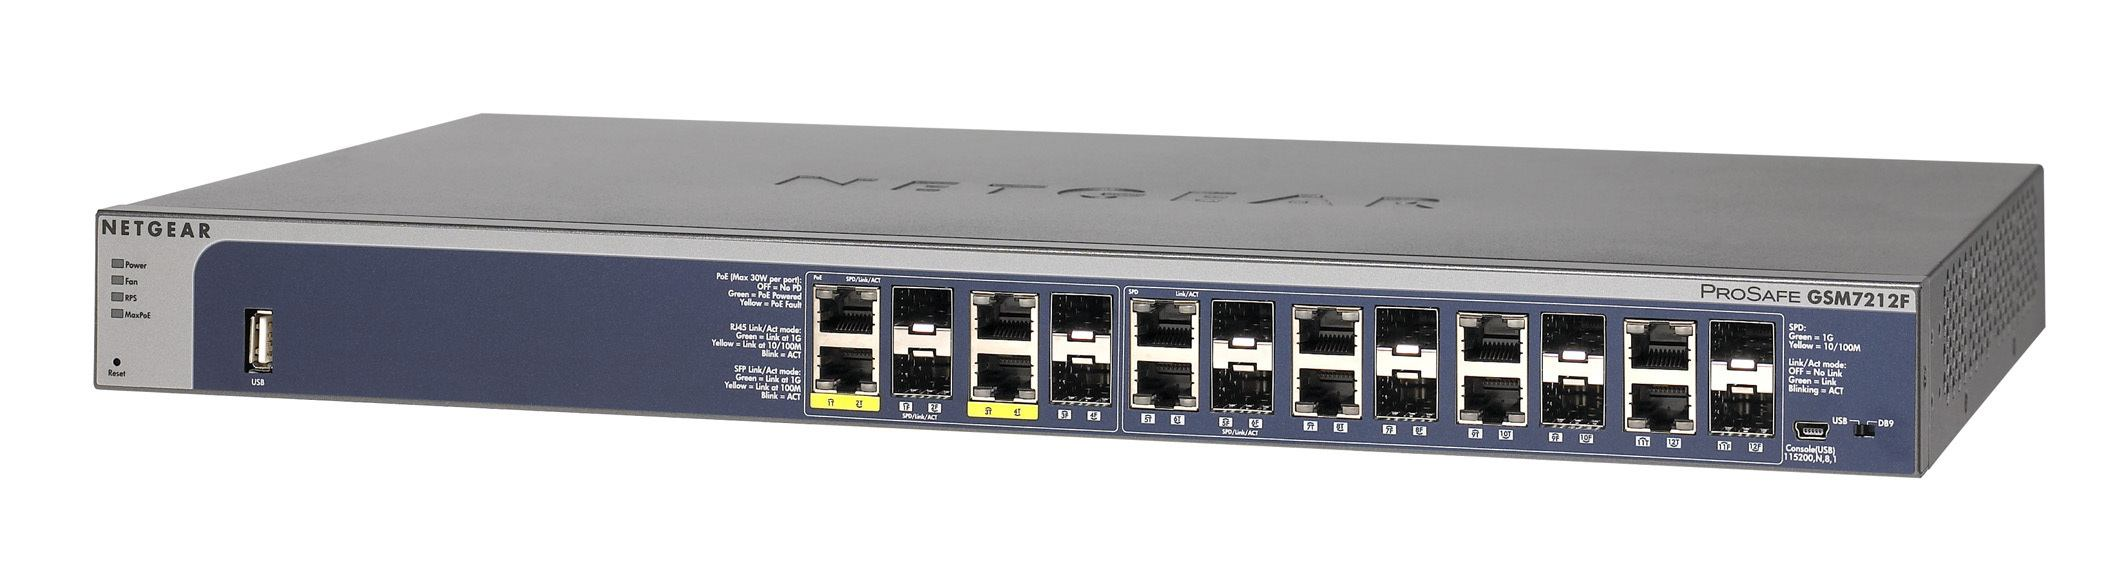 2022274-Netgear-ProSafe-GSM7212F-Gestito-L2-Grigio-Supporto-Power-over-Ethernet